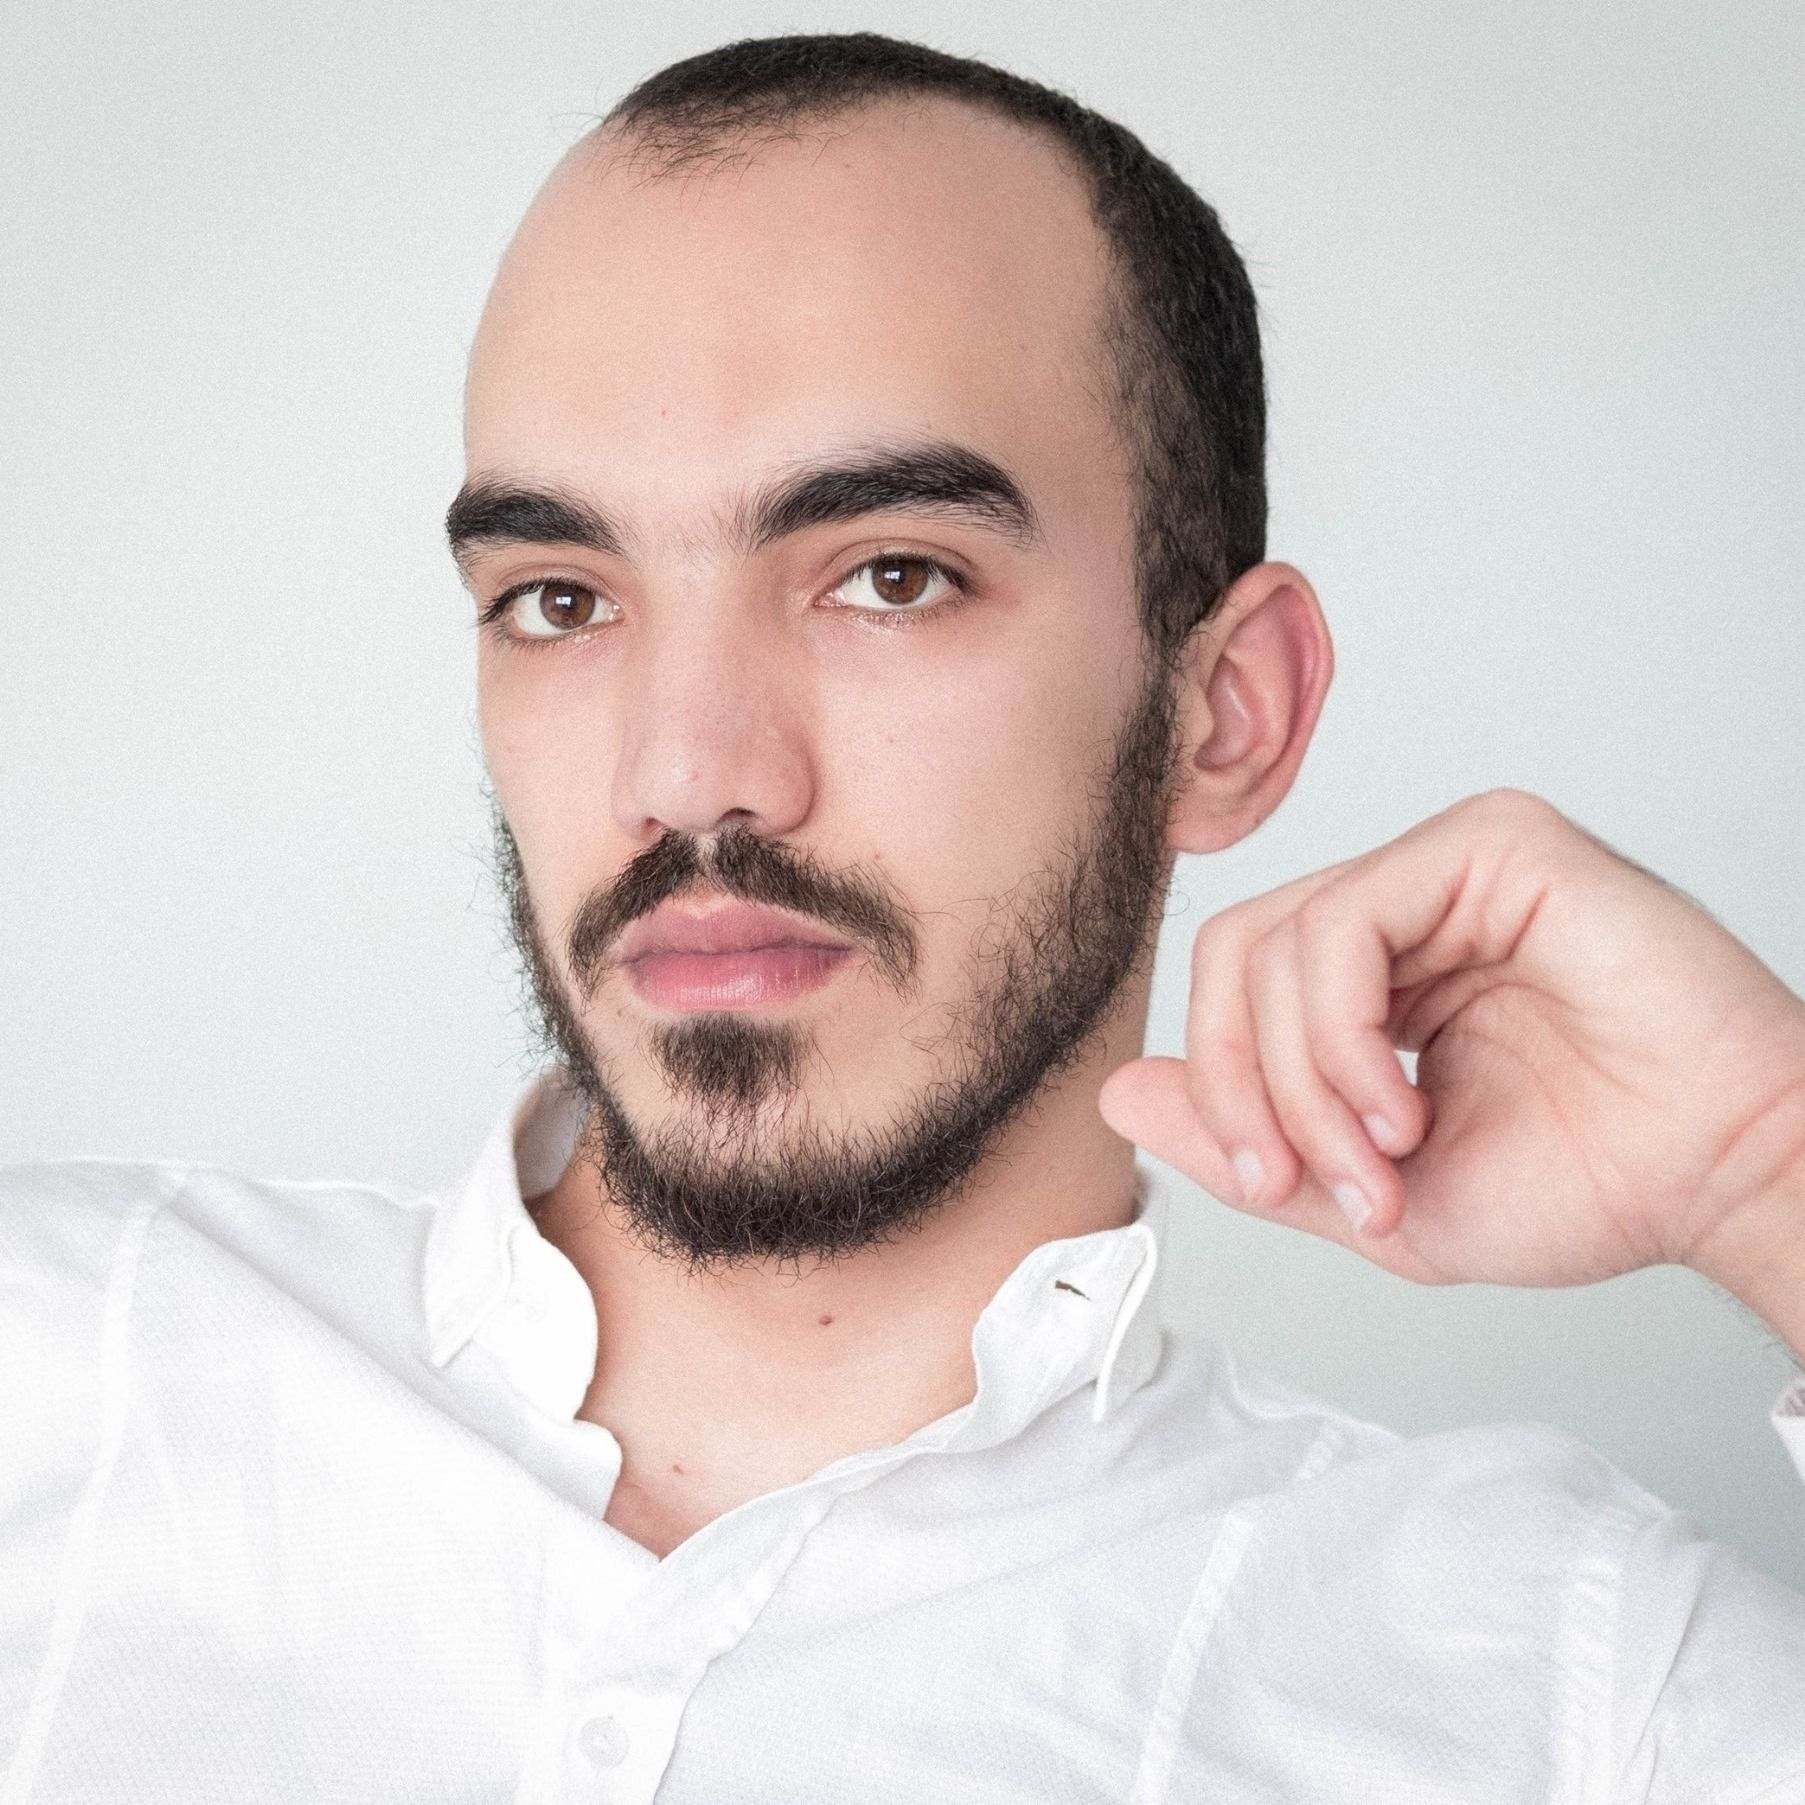 oussama barhoumi founder and ceo of student magazine